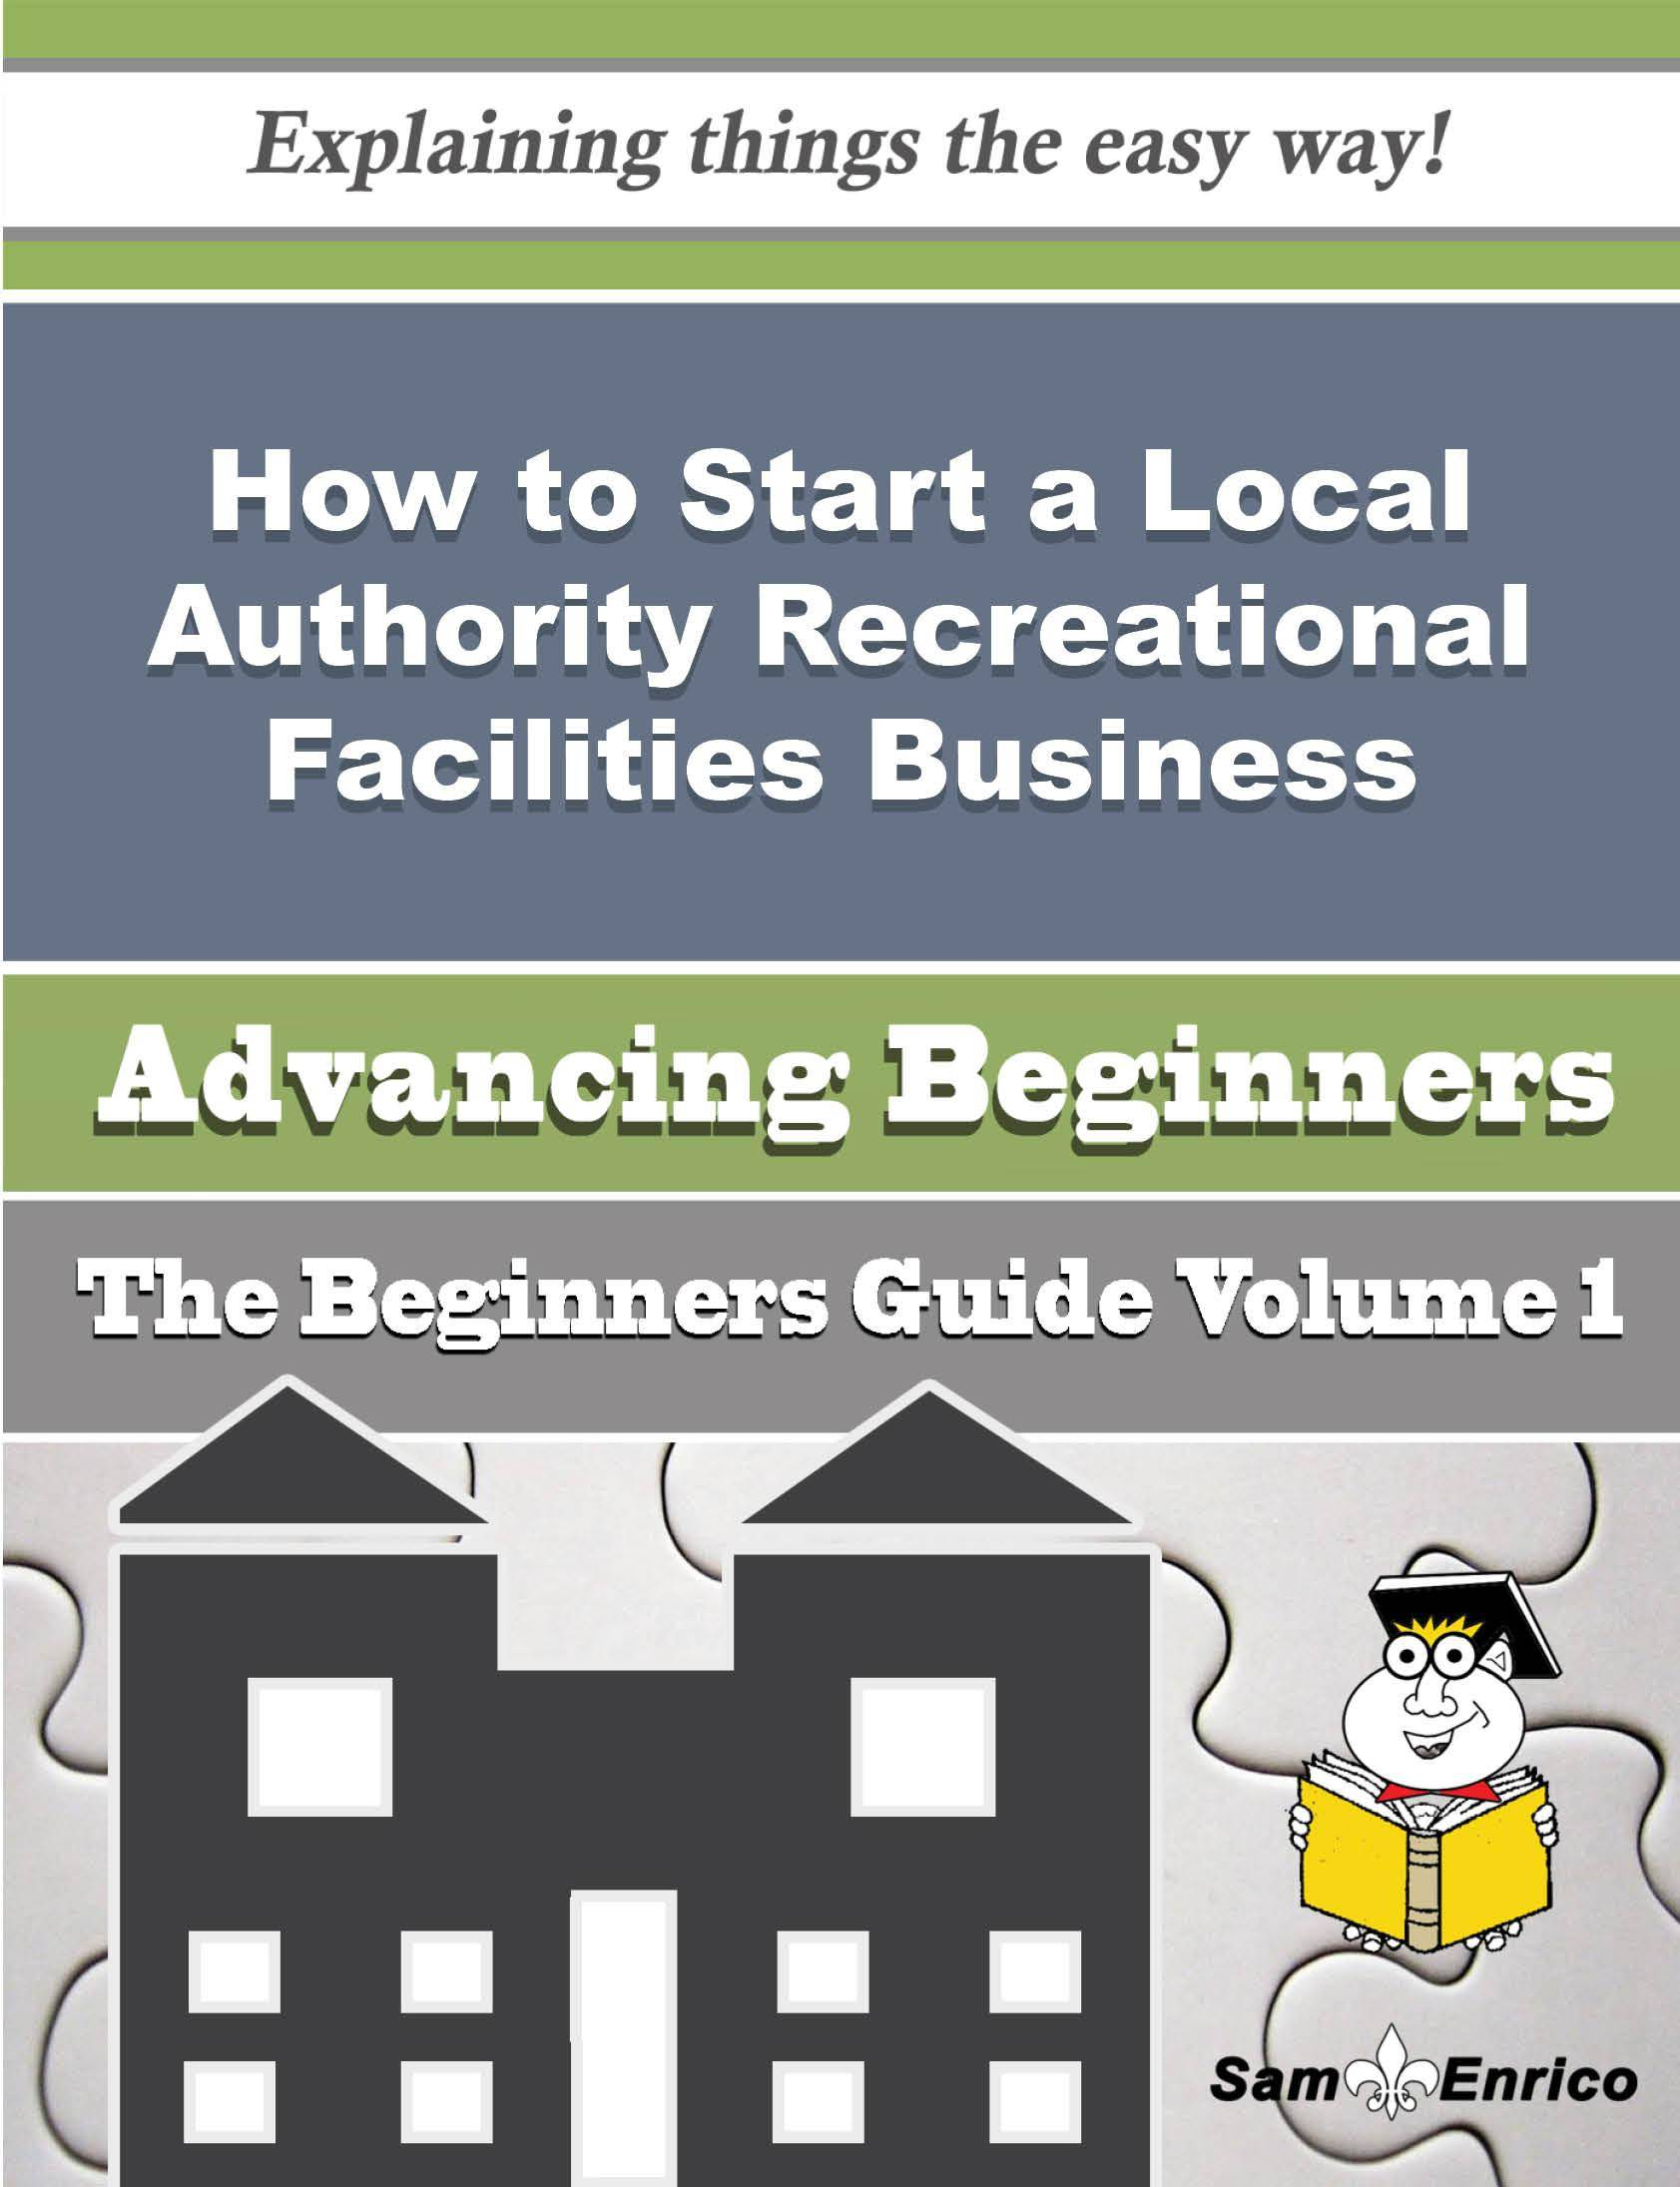 How to Start a Local Authority Recreational Facilities Business (Beginners Guide)